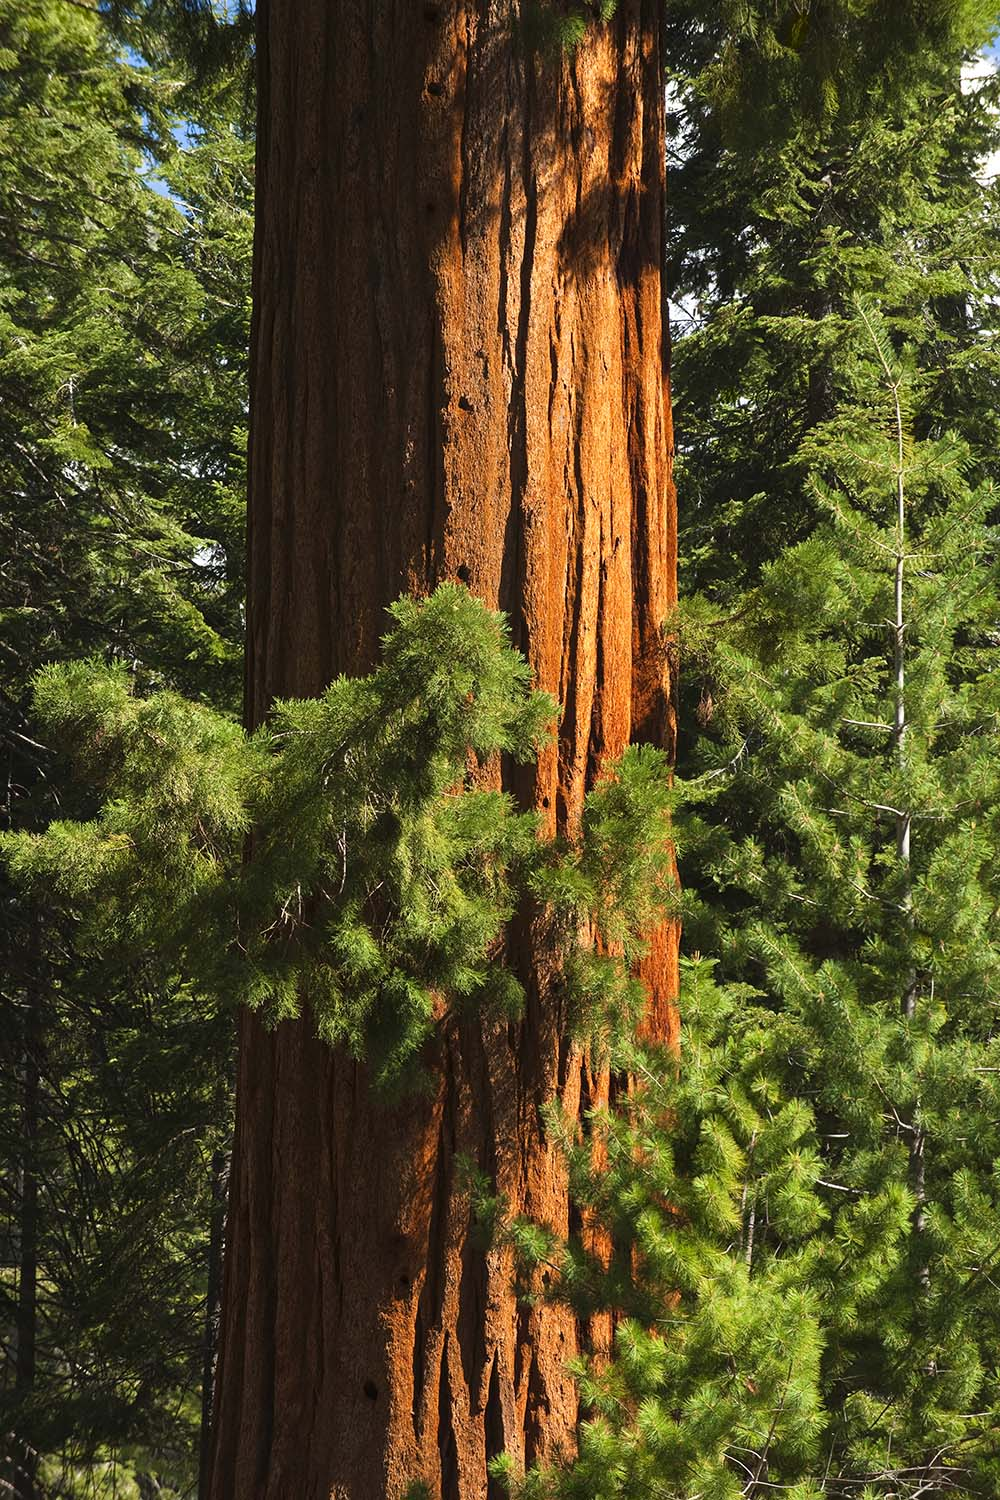 Free stock photo Giant redwood tree in Sequoia National Park, CA